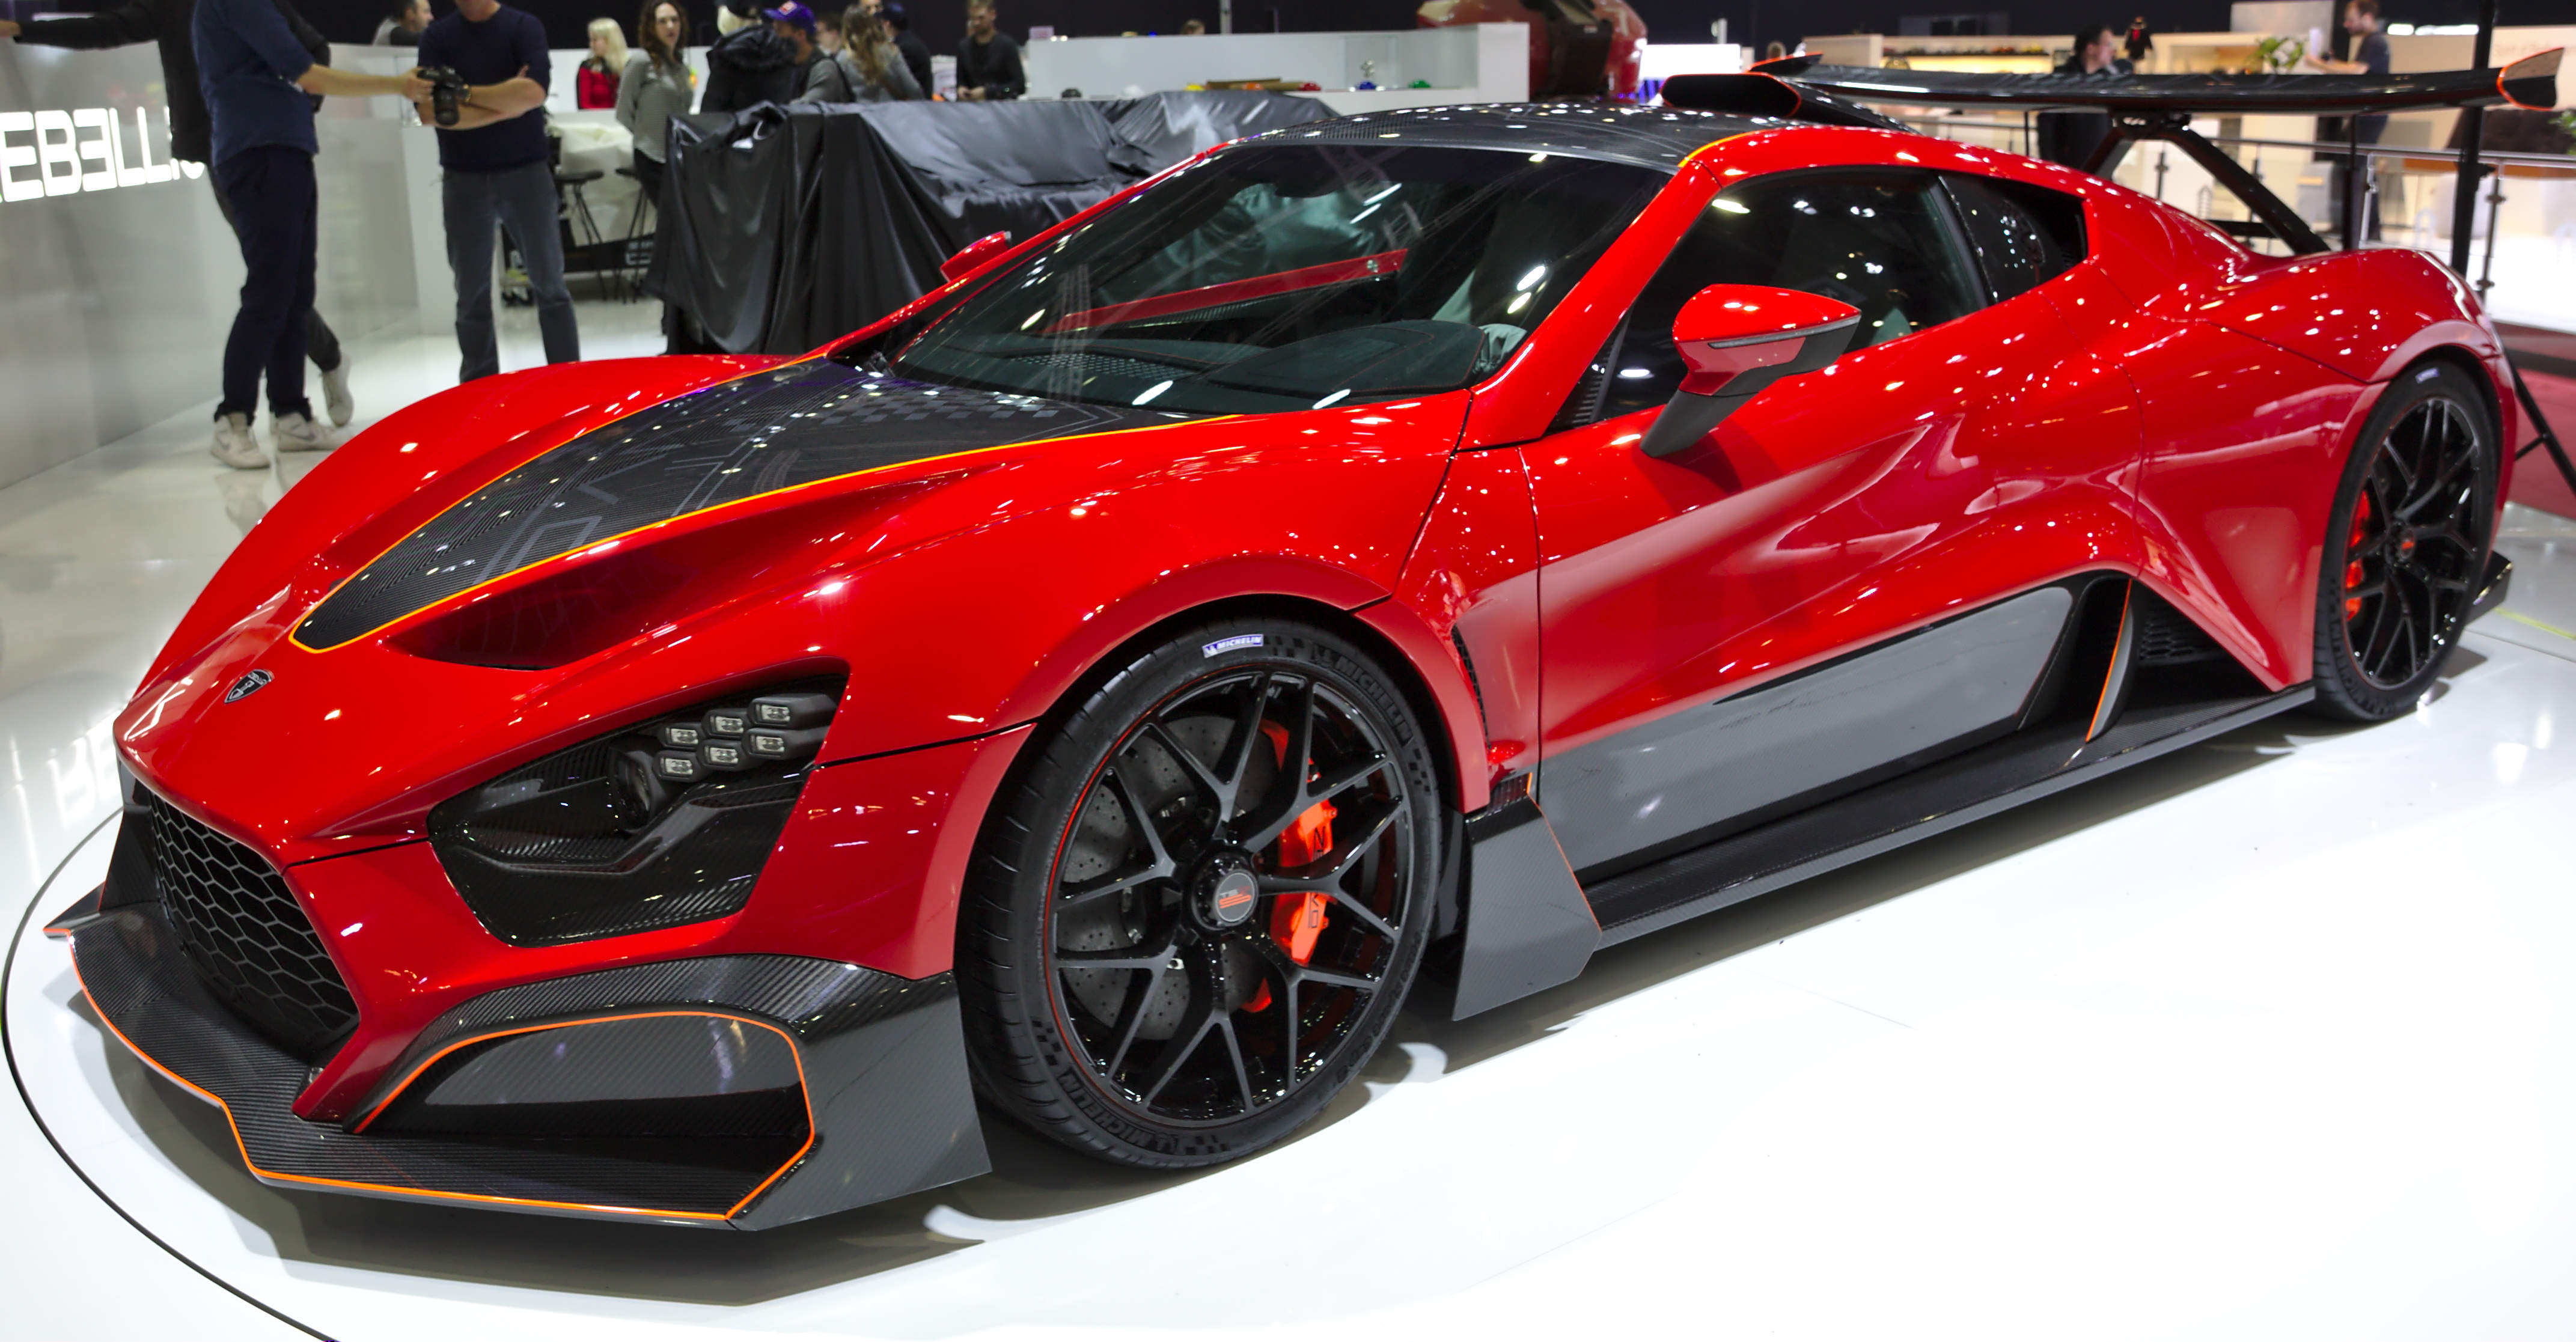 New Supercars 2020 Five Upcoming Supercars To Look Out For | Elite Traveler